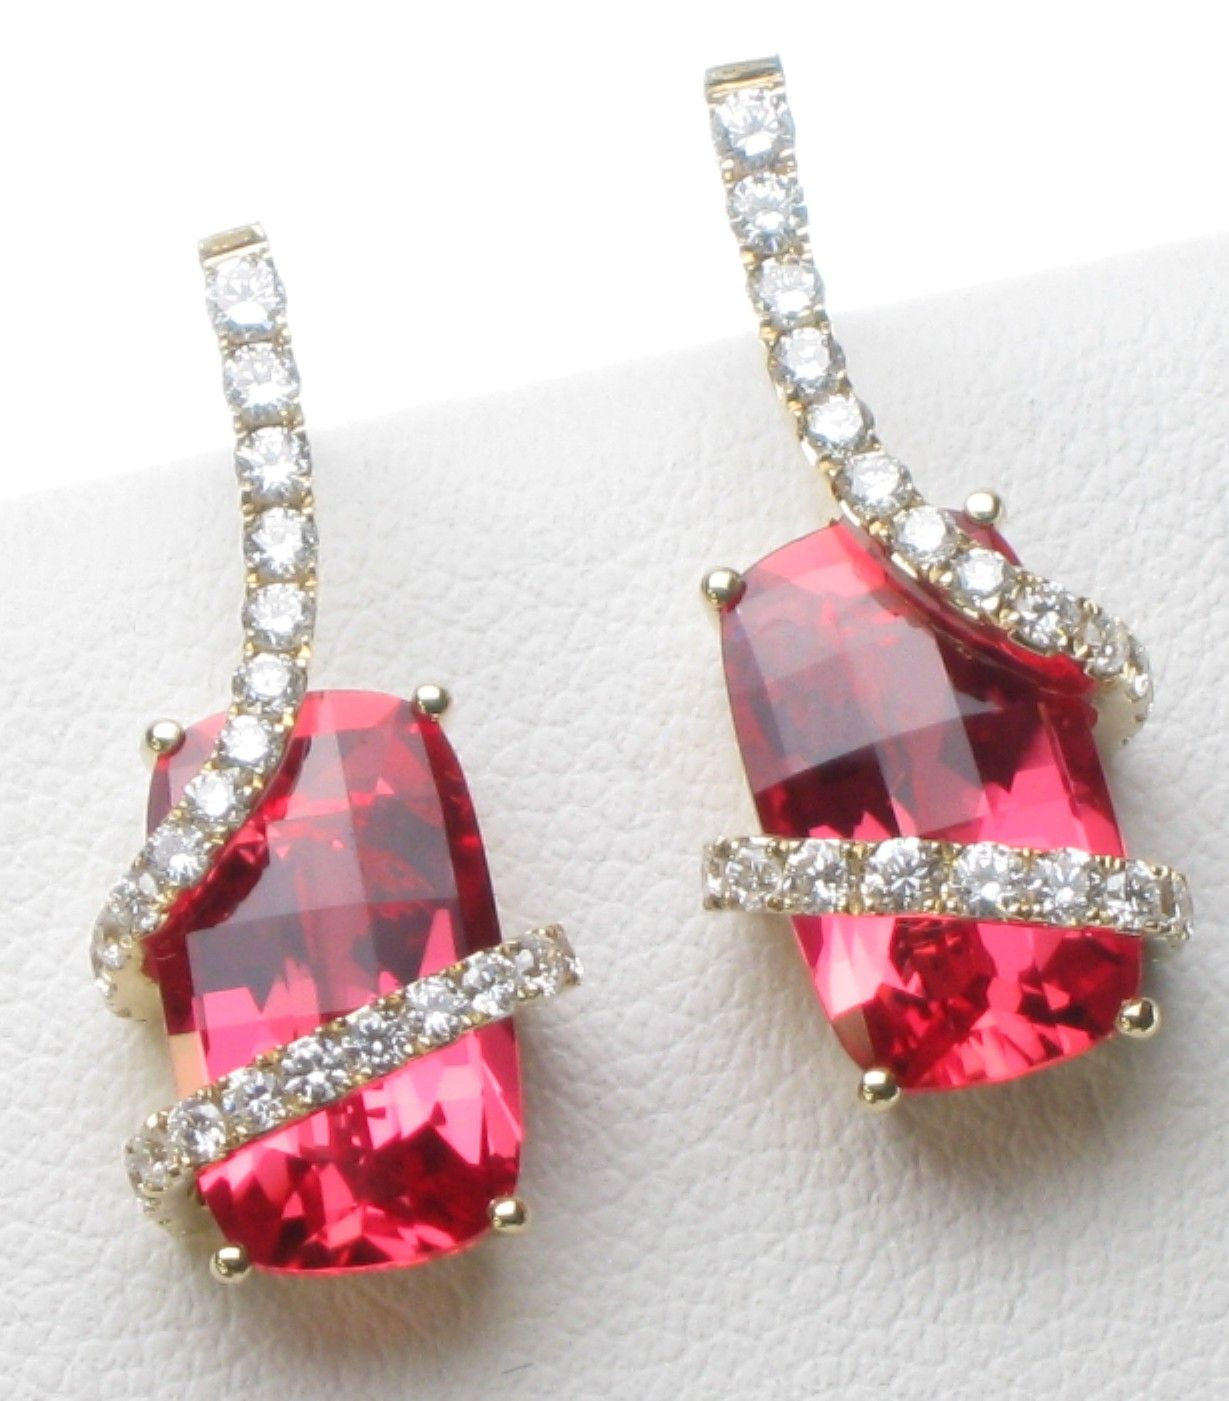 padparadscha sapphire carats estate ring gemstones earrings colored untreated jewelry